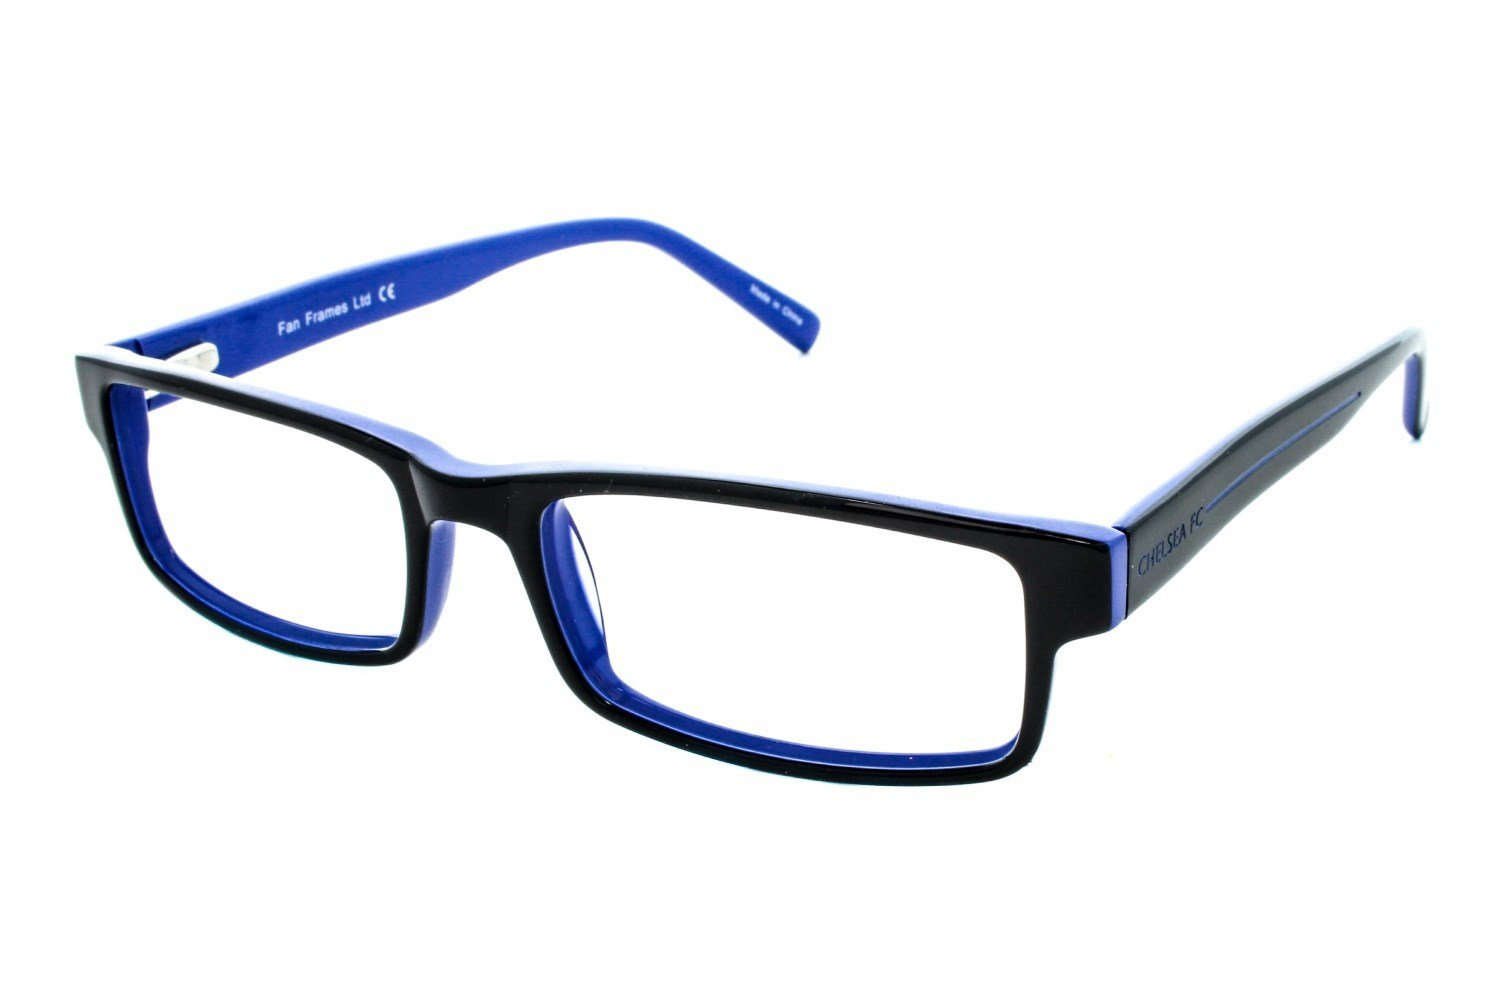 fan-frames-chelsea-fc-retro-prescription-eyeglasses